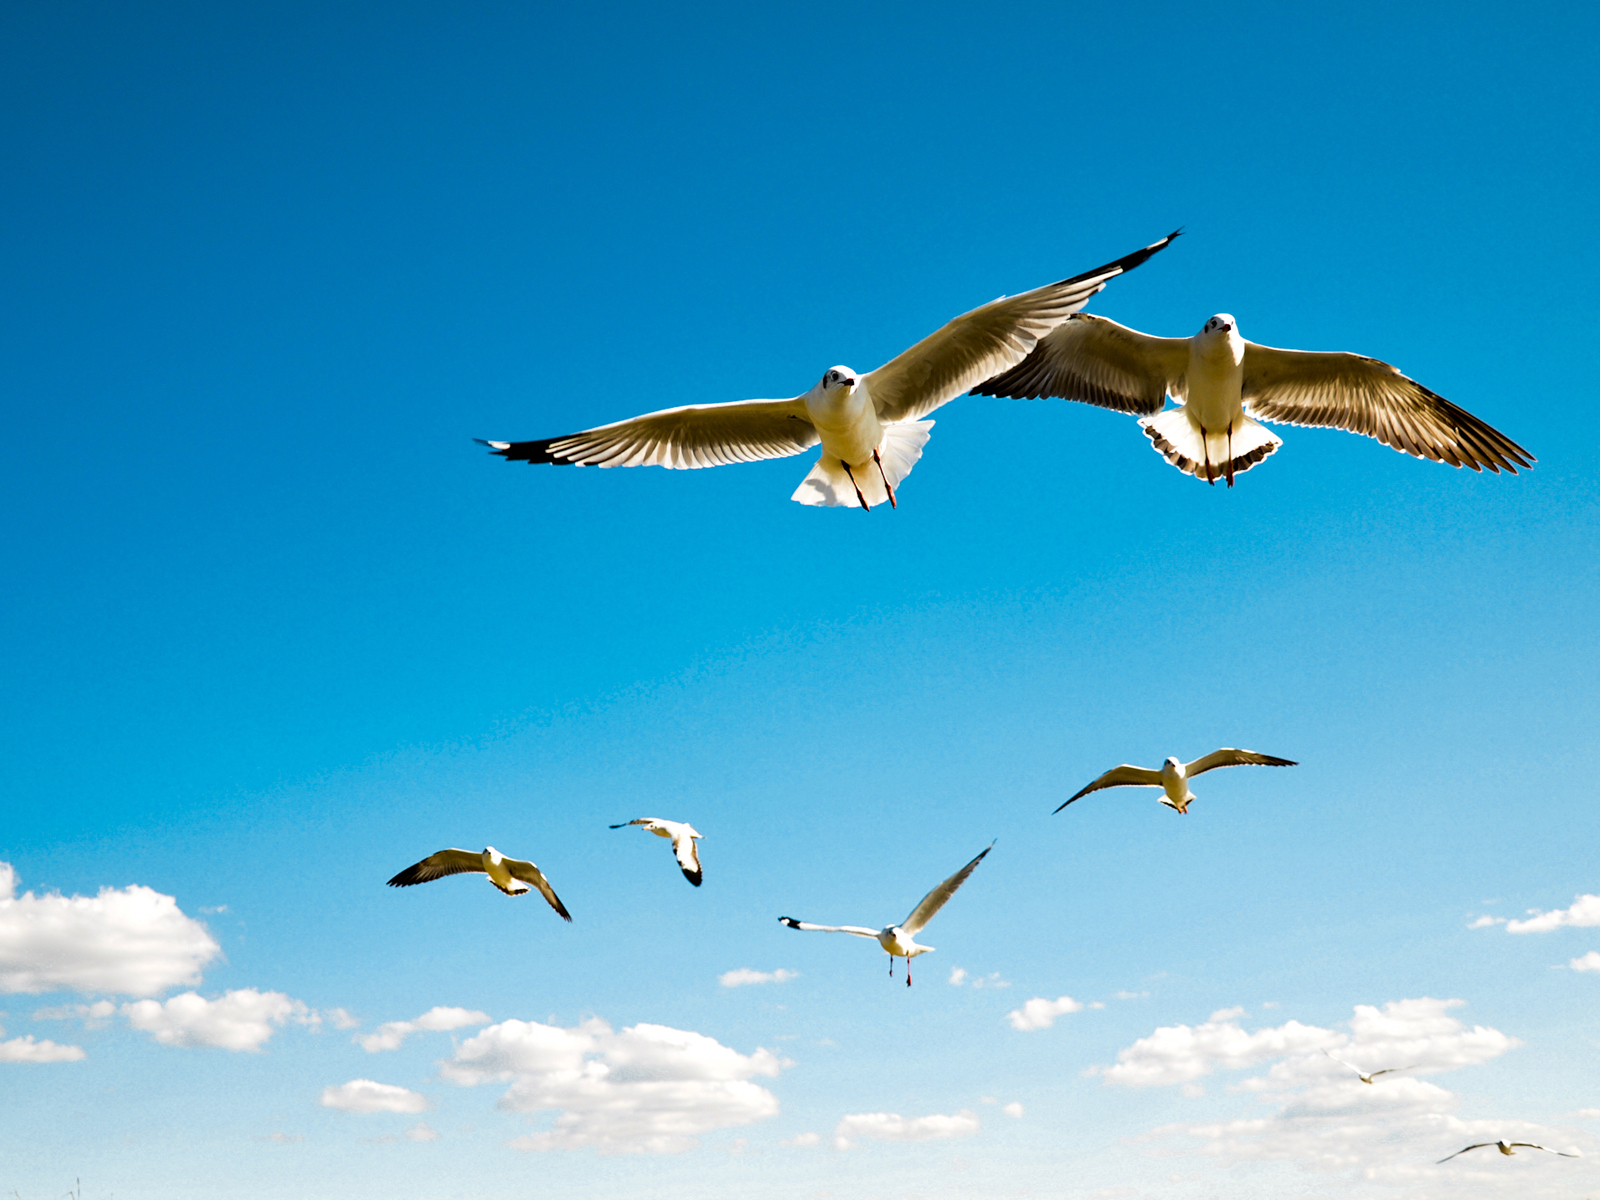 20758 download wallpaper Animals, Birds, Sky, Seagulls screensavers and pictures for free